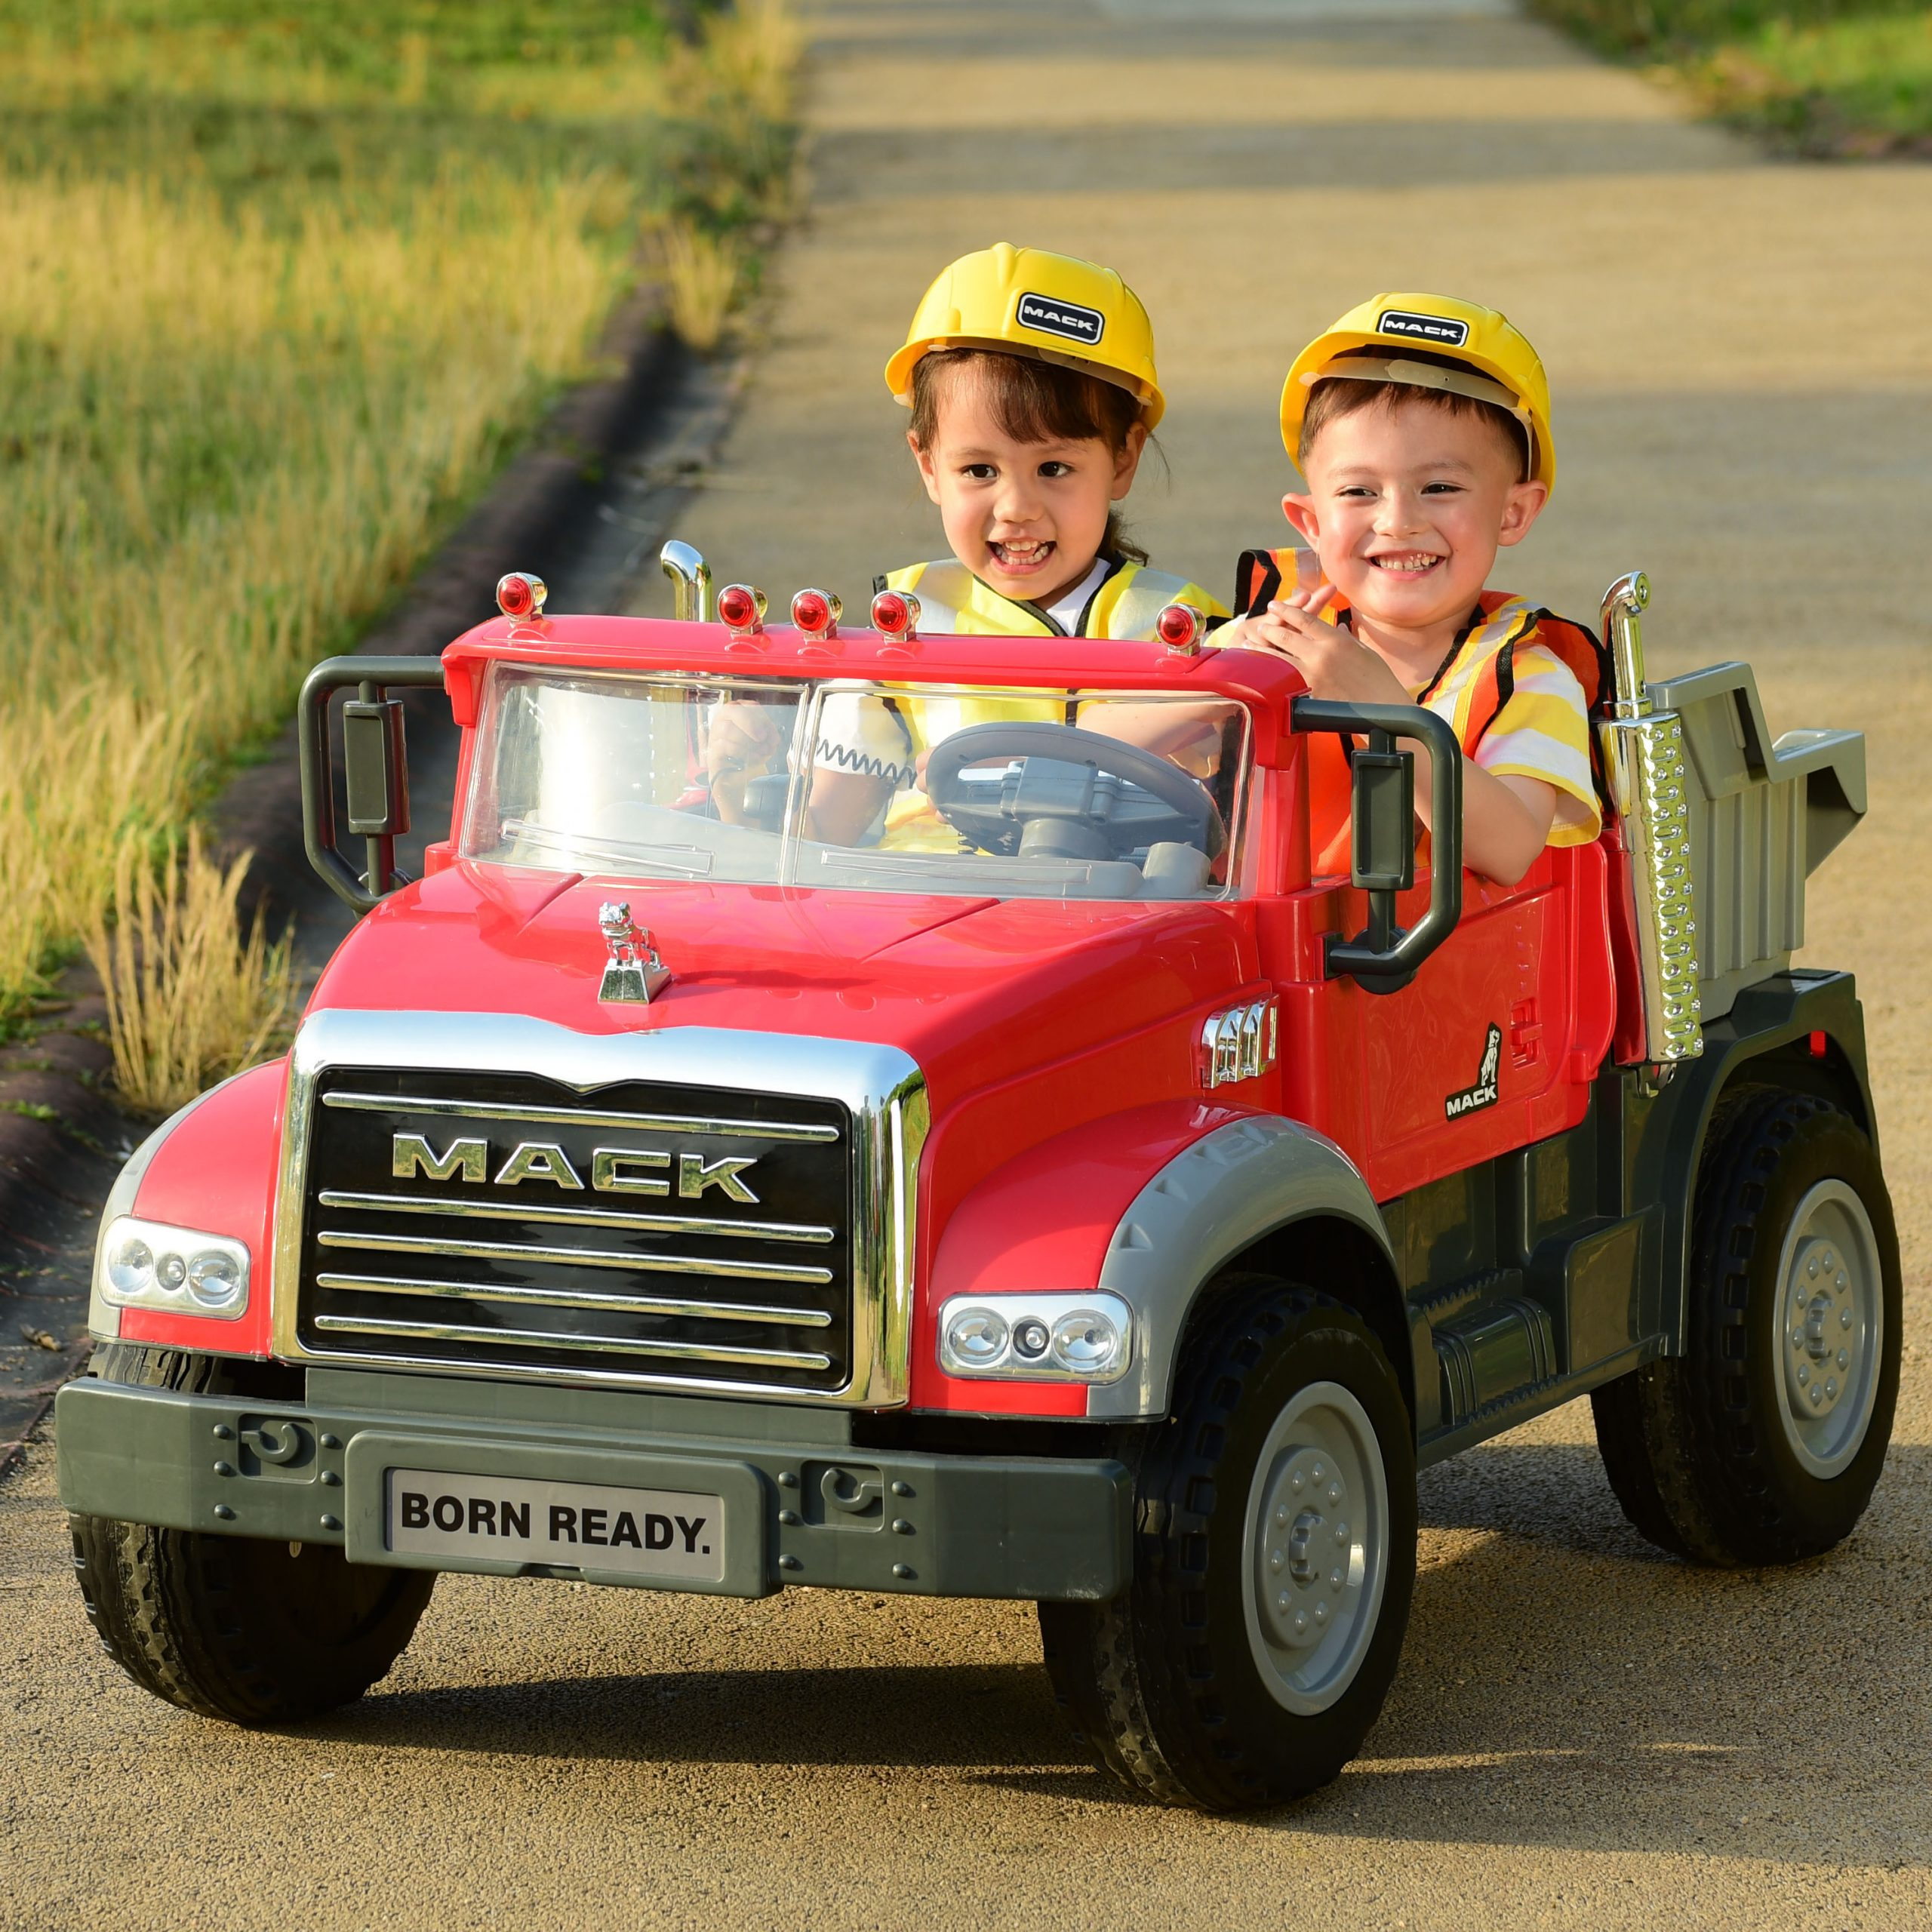 You Can Get A Battery Operated Dump Truck For Your Kids That Actually Dumps Cargo